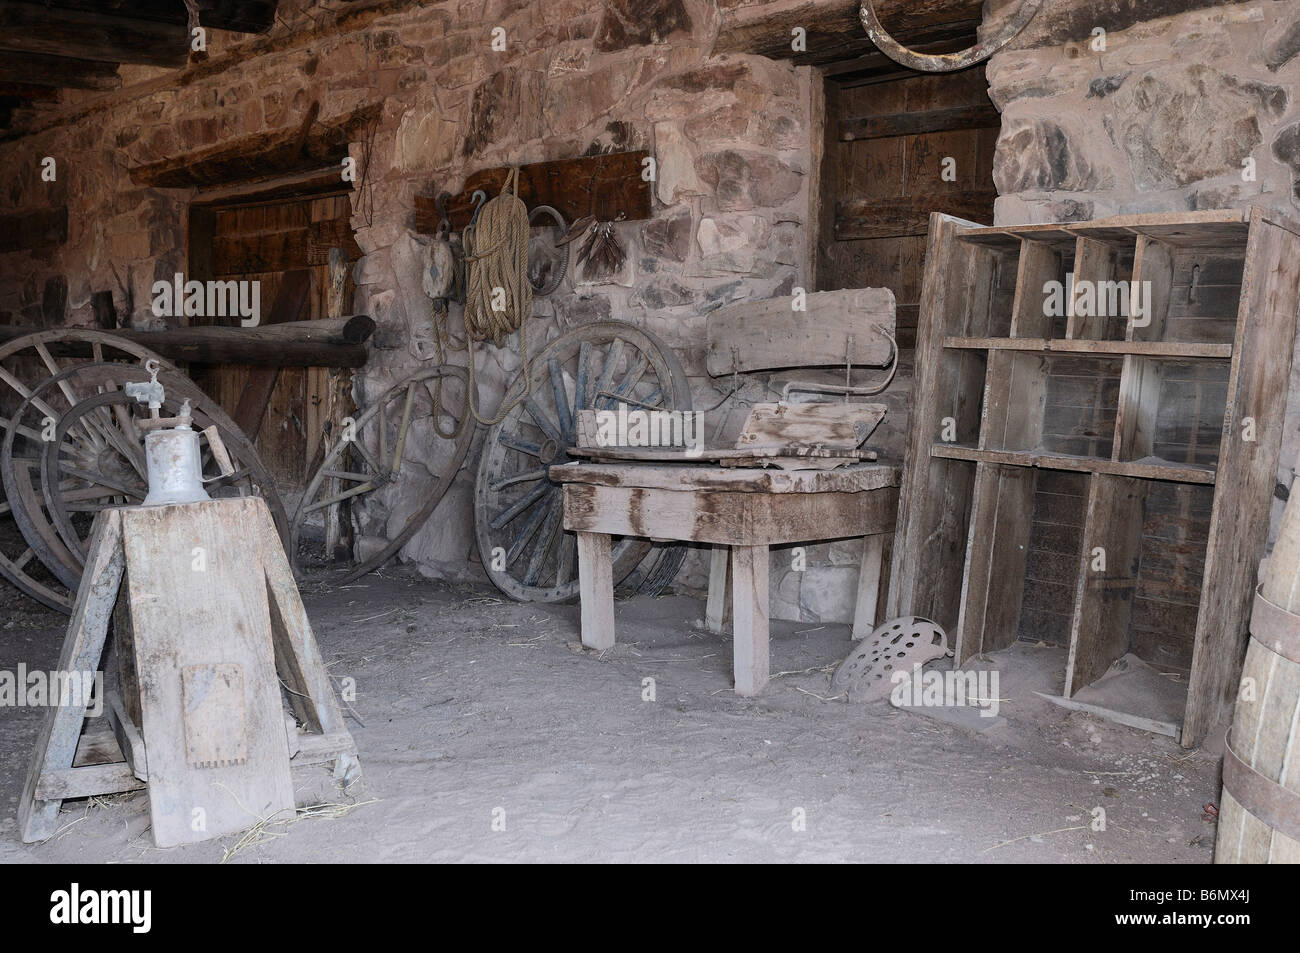 Interior view of the stables at the Hubbell Trading Post in Ganado, Arizona with wagon wheels and other historical - Stock Image